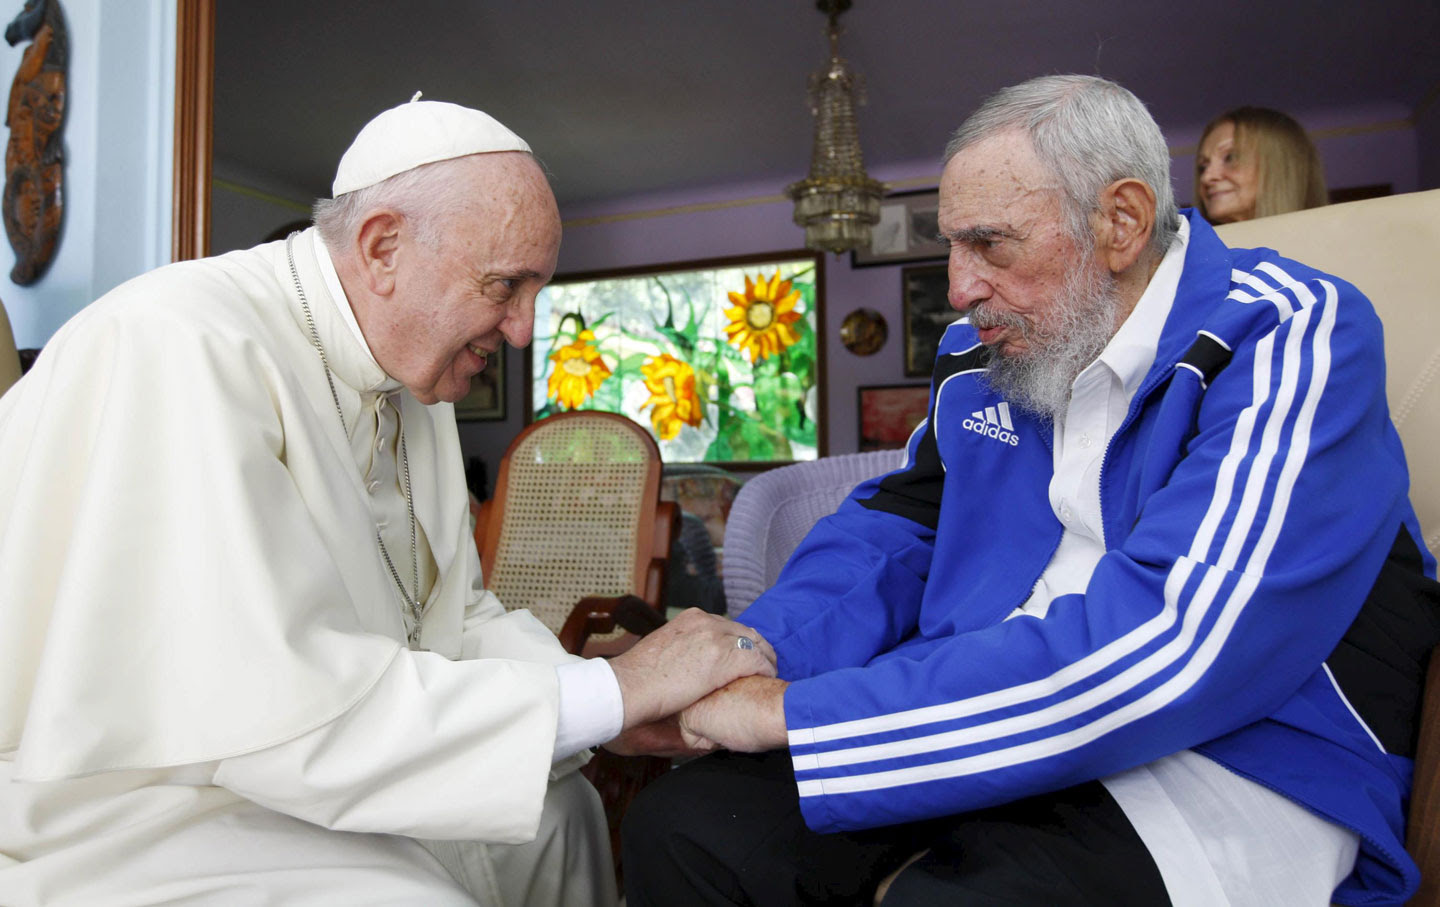 http://www.thenation.com/wp-content/uploads/2015/09/pope_and_fidel_rtr_img.jpg